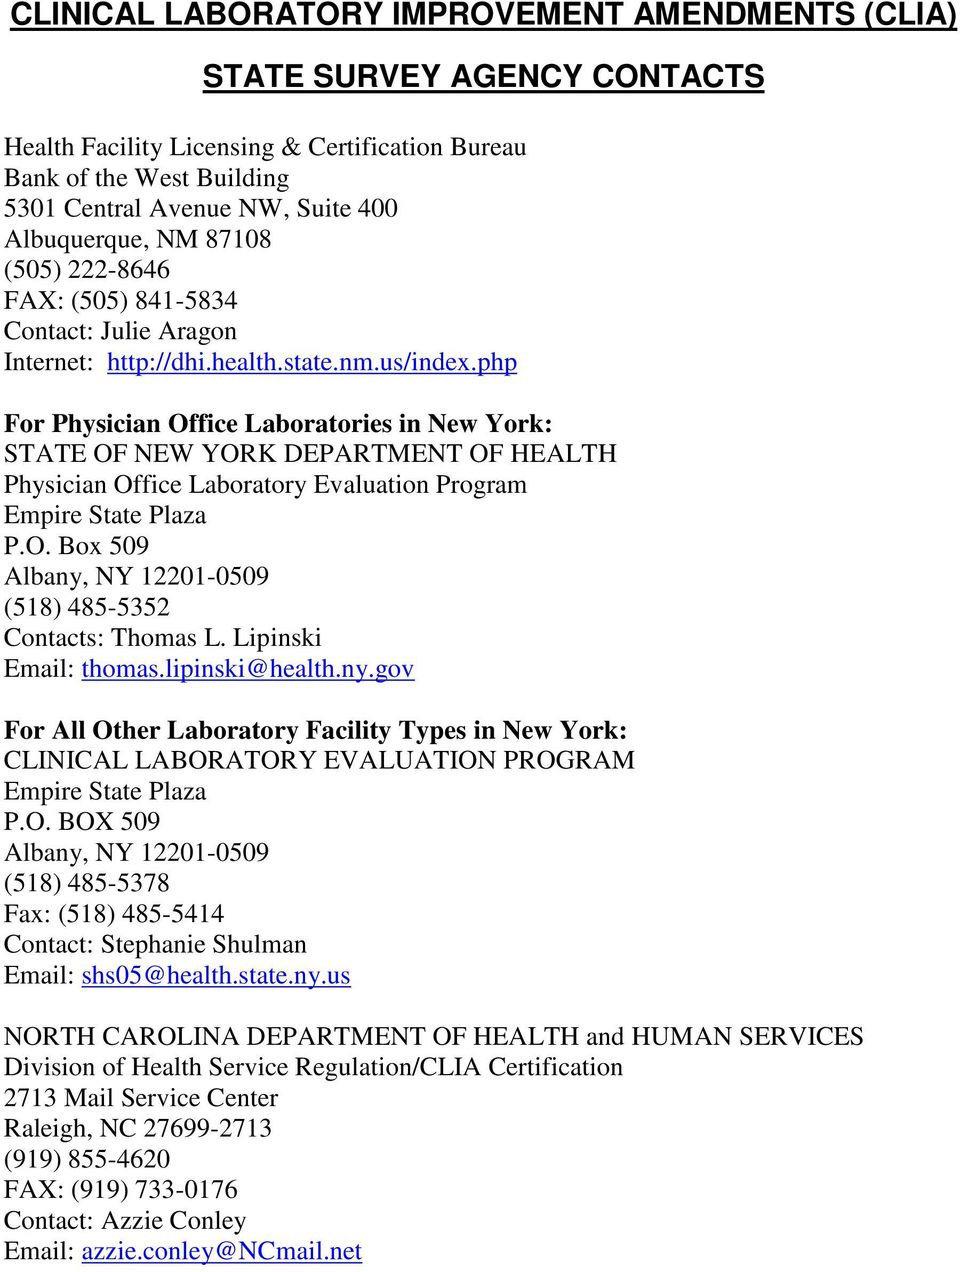 Lipinski Email: thomas.lipinski@health.ny.gov For All Other Laboratory Facility Types in New York: CLINICAL LABORATORY EVALUATION PROGRAM Empire State Plaza P.O. BOX 509 Albany, NY 12201-0509 (518) 485-5378 Fax: (518) 485-5414 Contact: Stephanie Shulman Email: shs05@health.